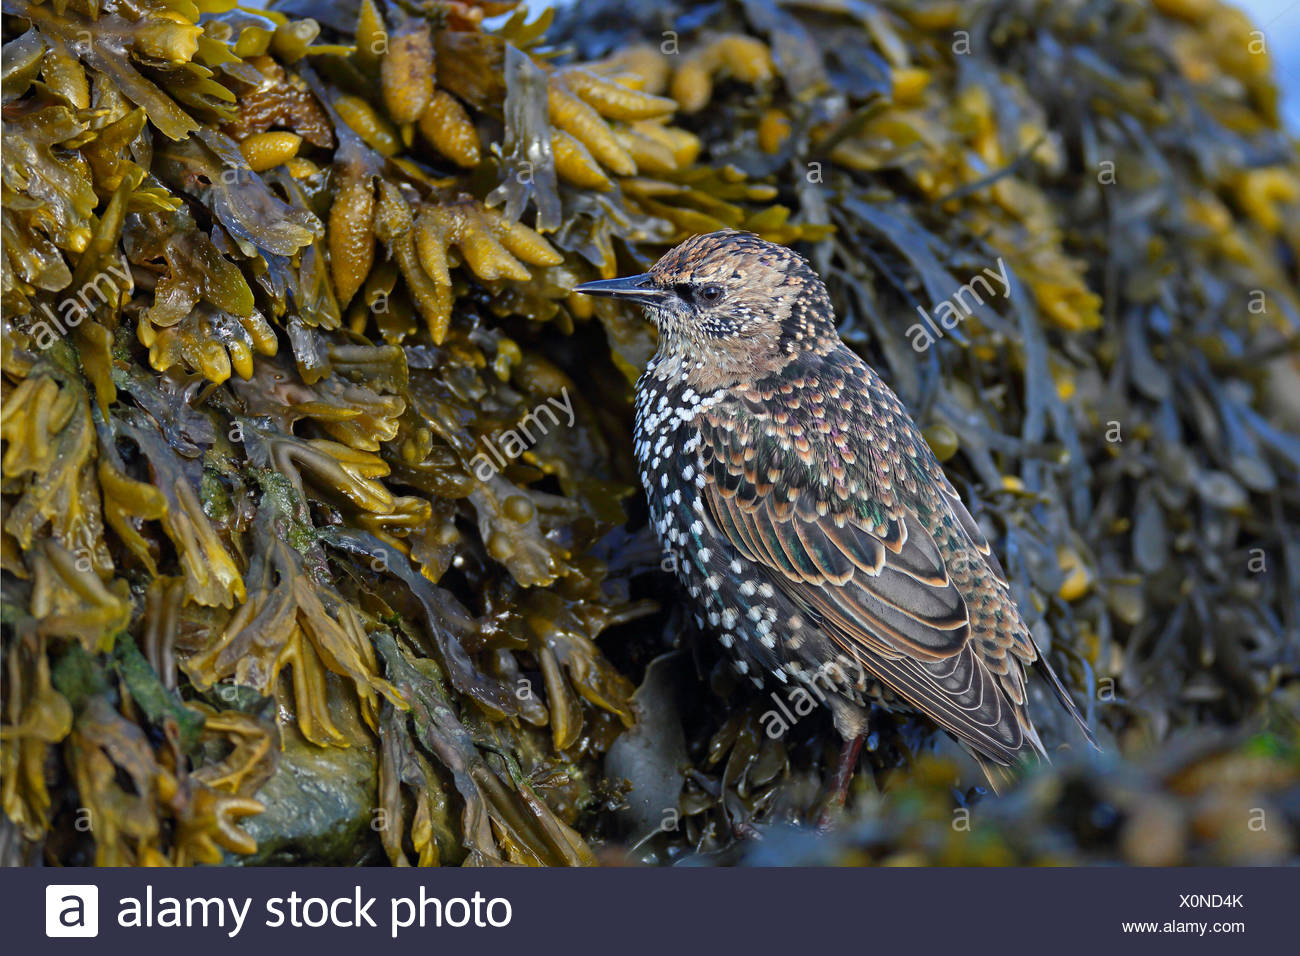 common starling (Sturnus vulgaris), starling in winter plumage looks for food at bladderwrack, Netherlands, Frisia - Stock Image